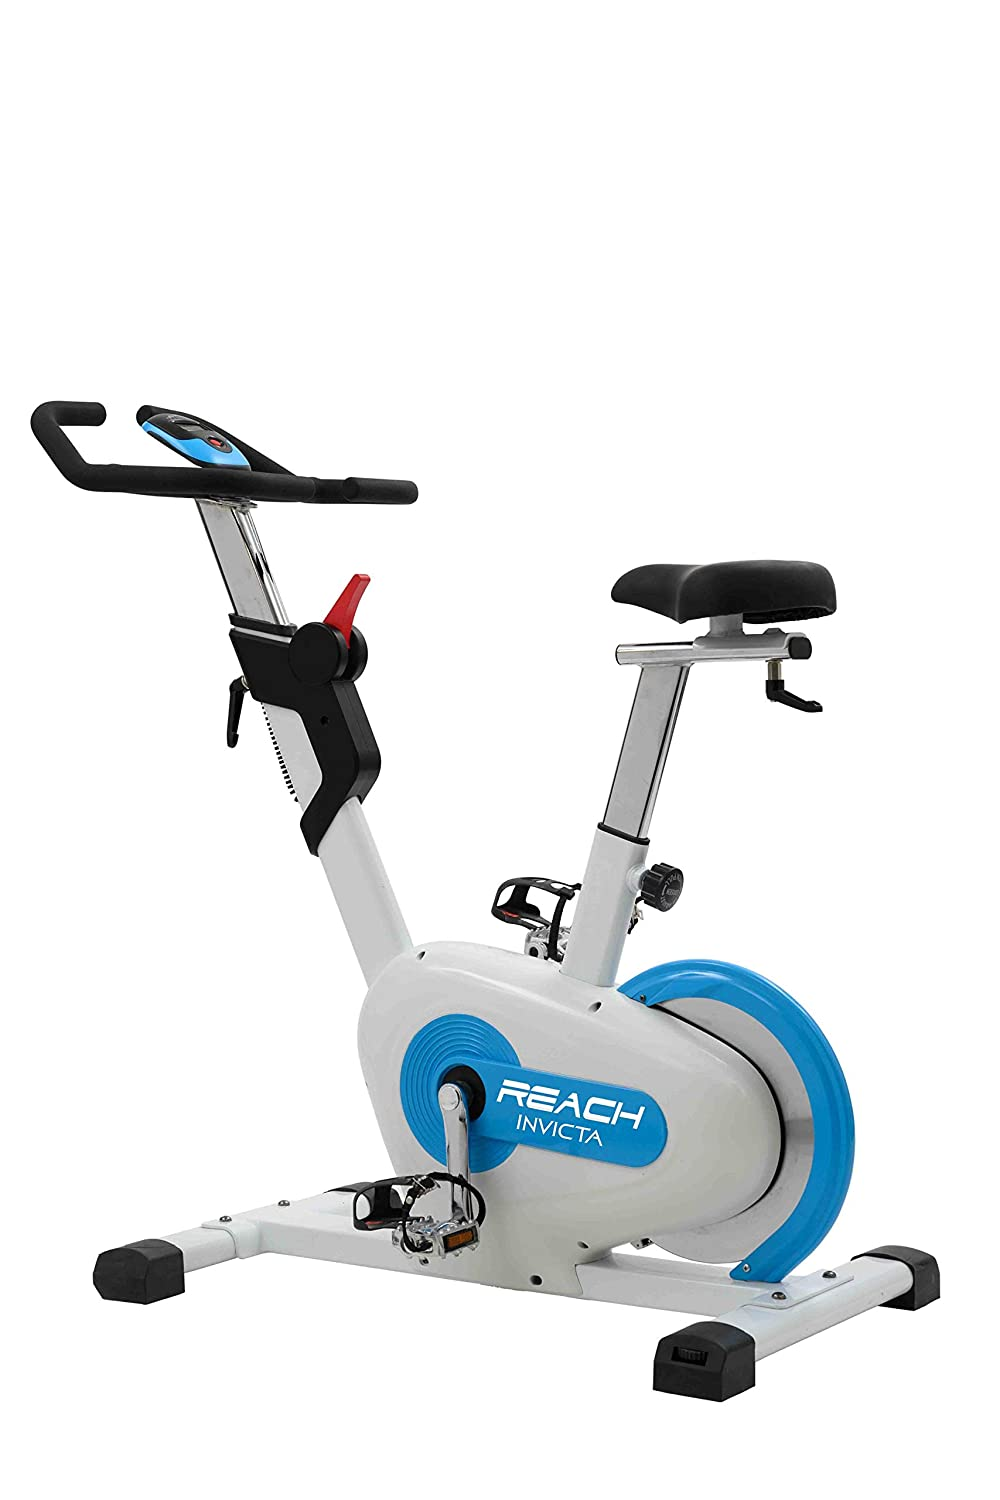 Reach Invicta Upright Spin Bike with Rear Drive Flywheel Magnetic Exercise Cycle for Home Gym